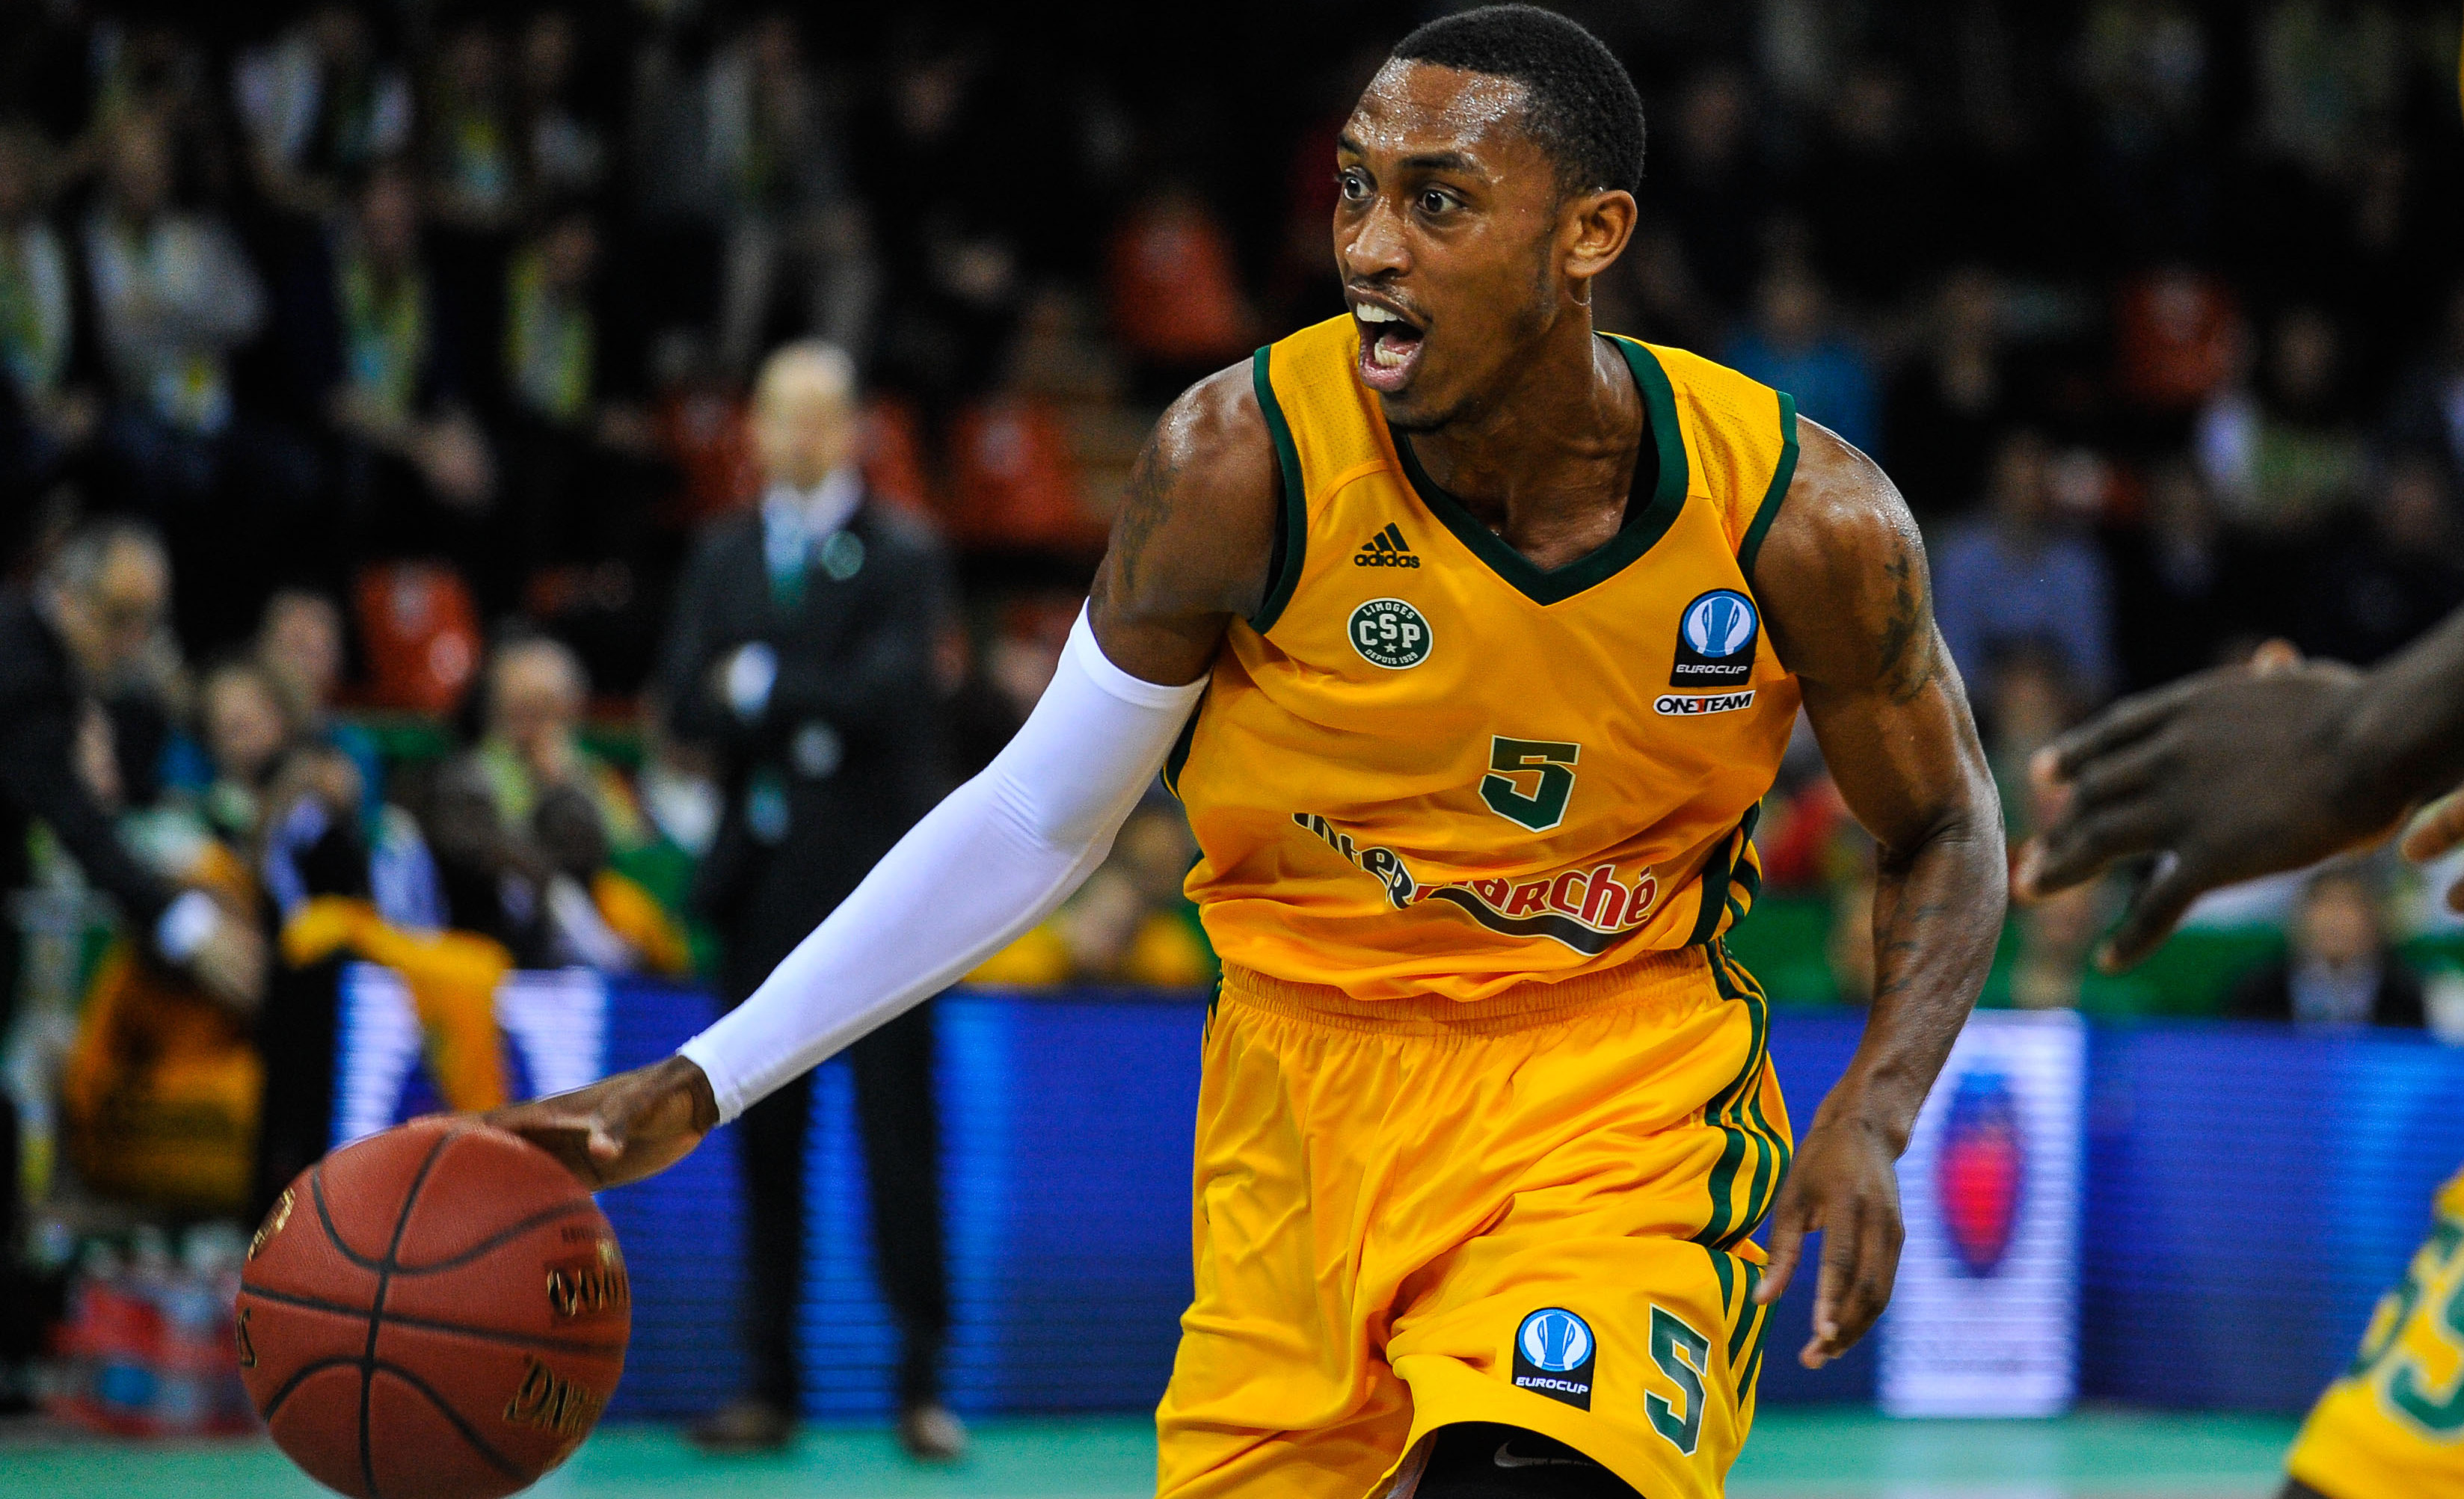 Inception sports jamar smith inception sports for Paok salonique basket